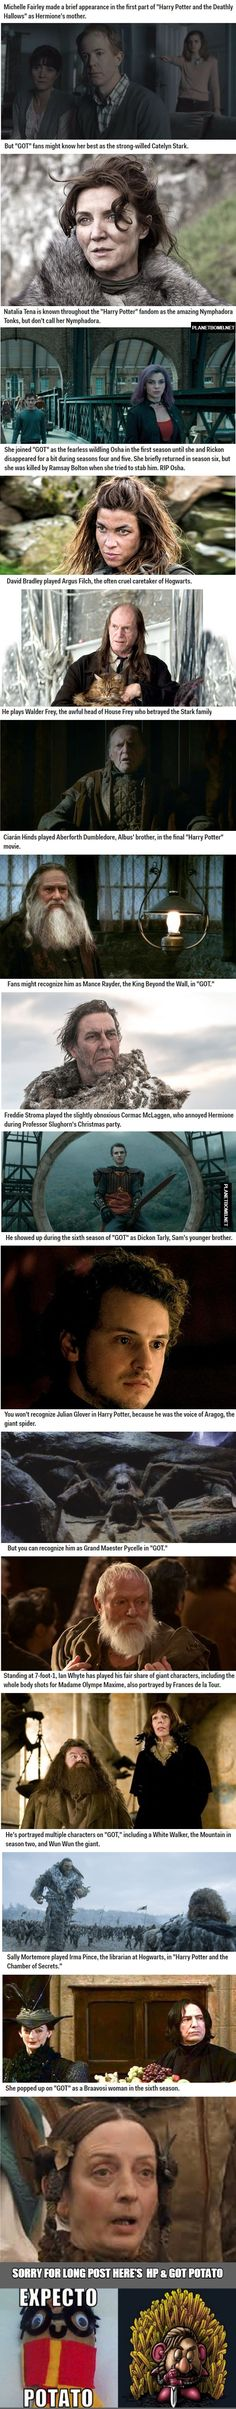 Actors who went from 'Harry Potter' to 'Game of Thrones'...